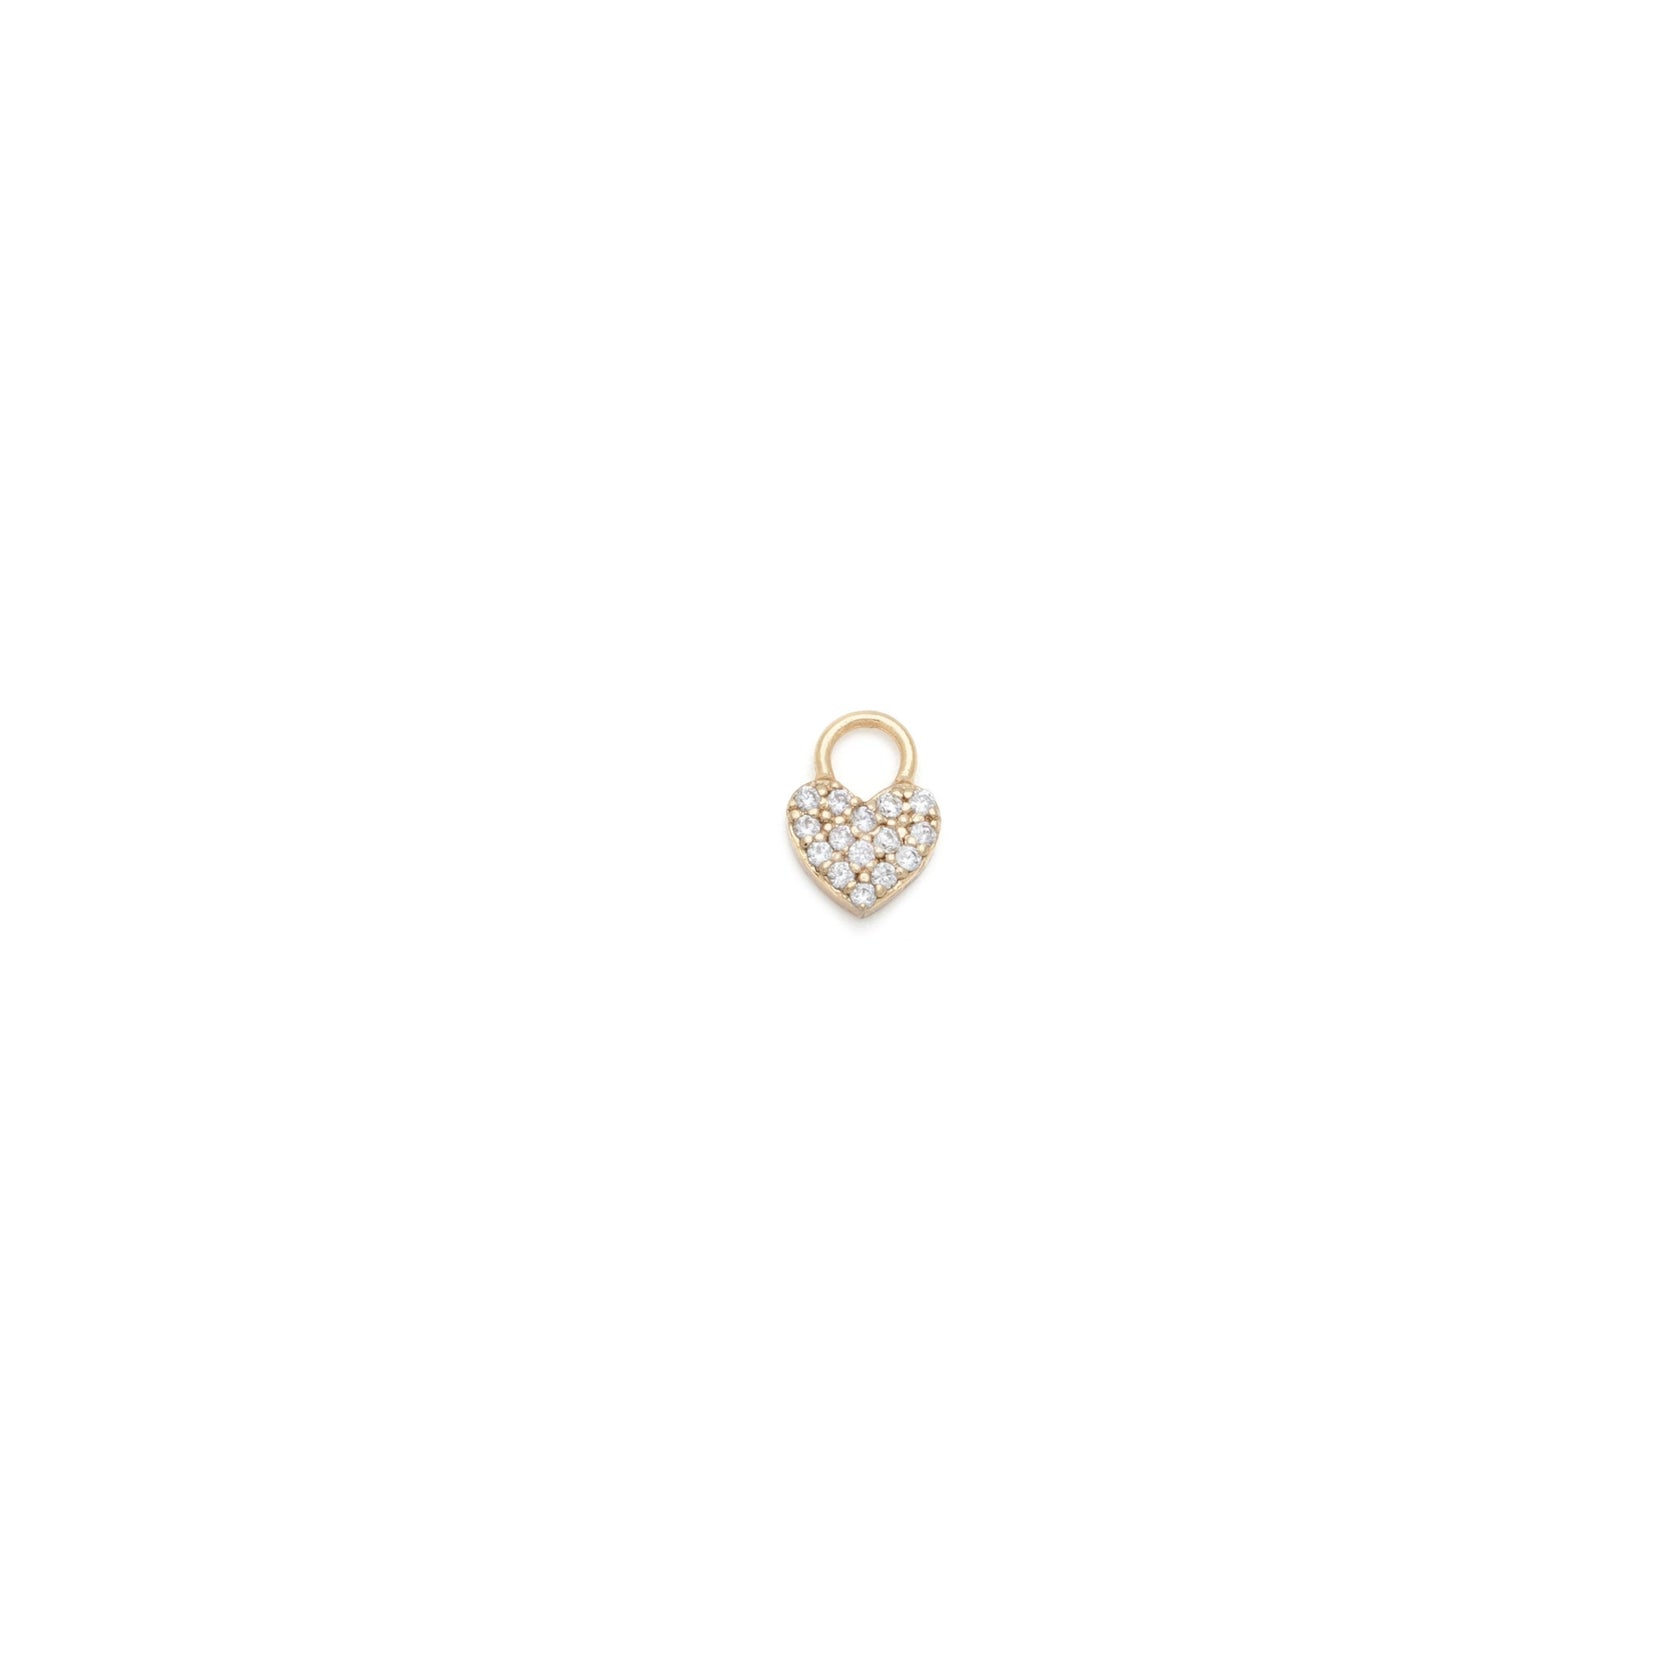 Single Pave Heart Earring Charm -  Gold Vermeil